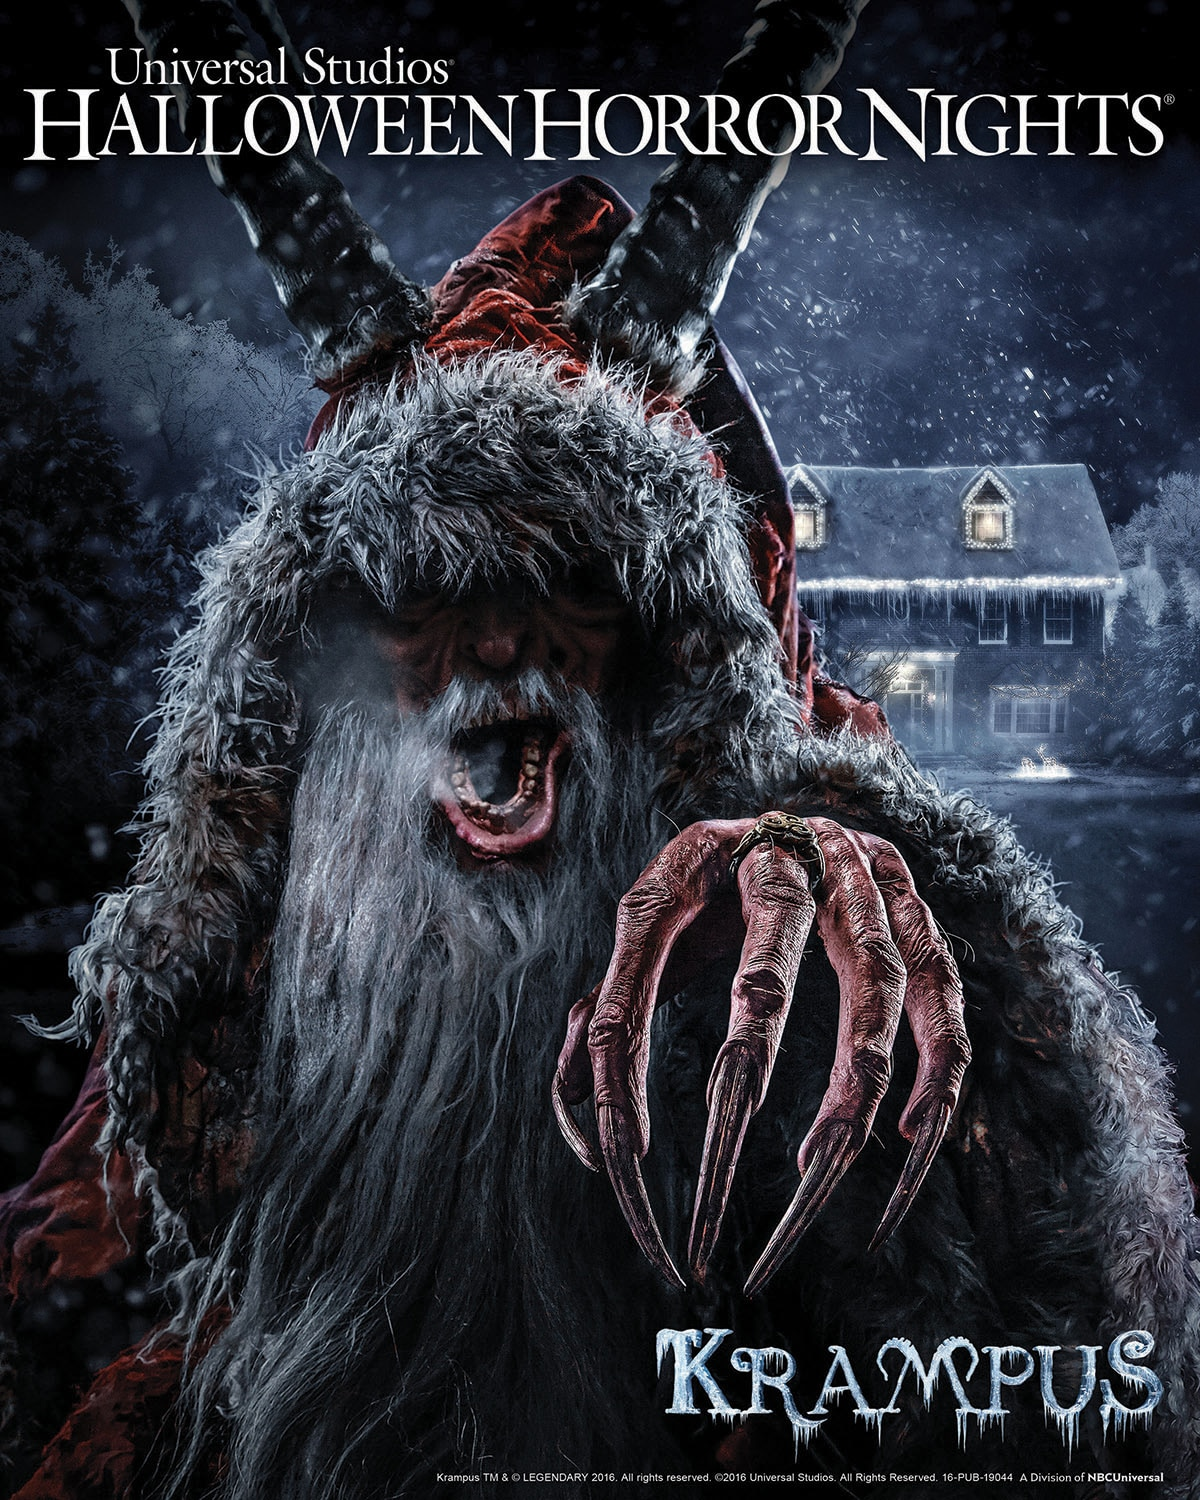 Christmas Horror Story Krampus.Halloween Horror Nights Unleashes Christmas Fear With